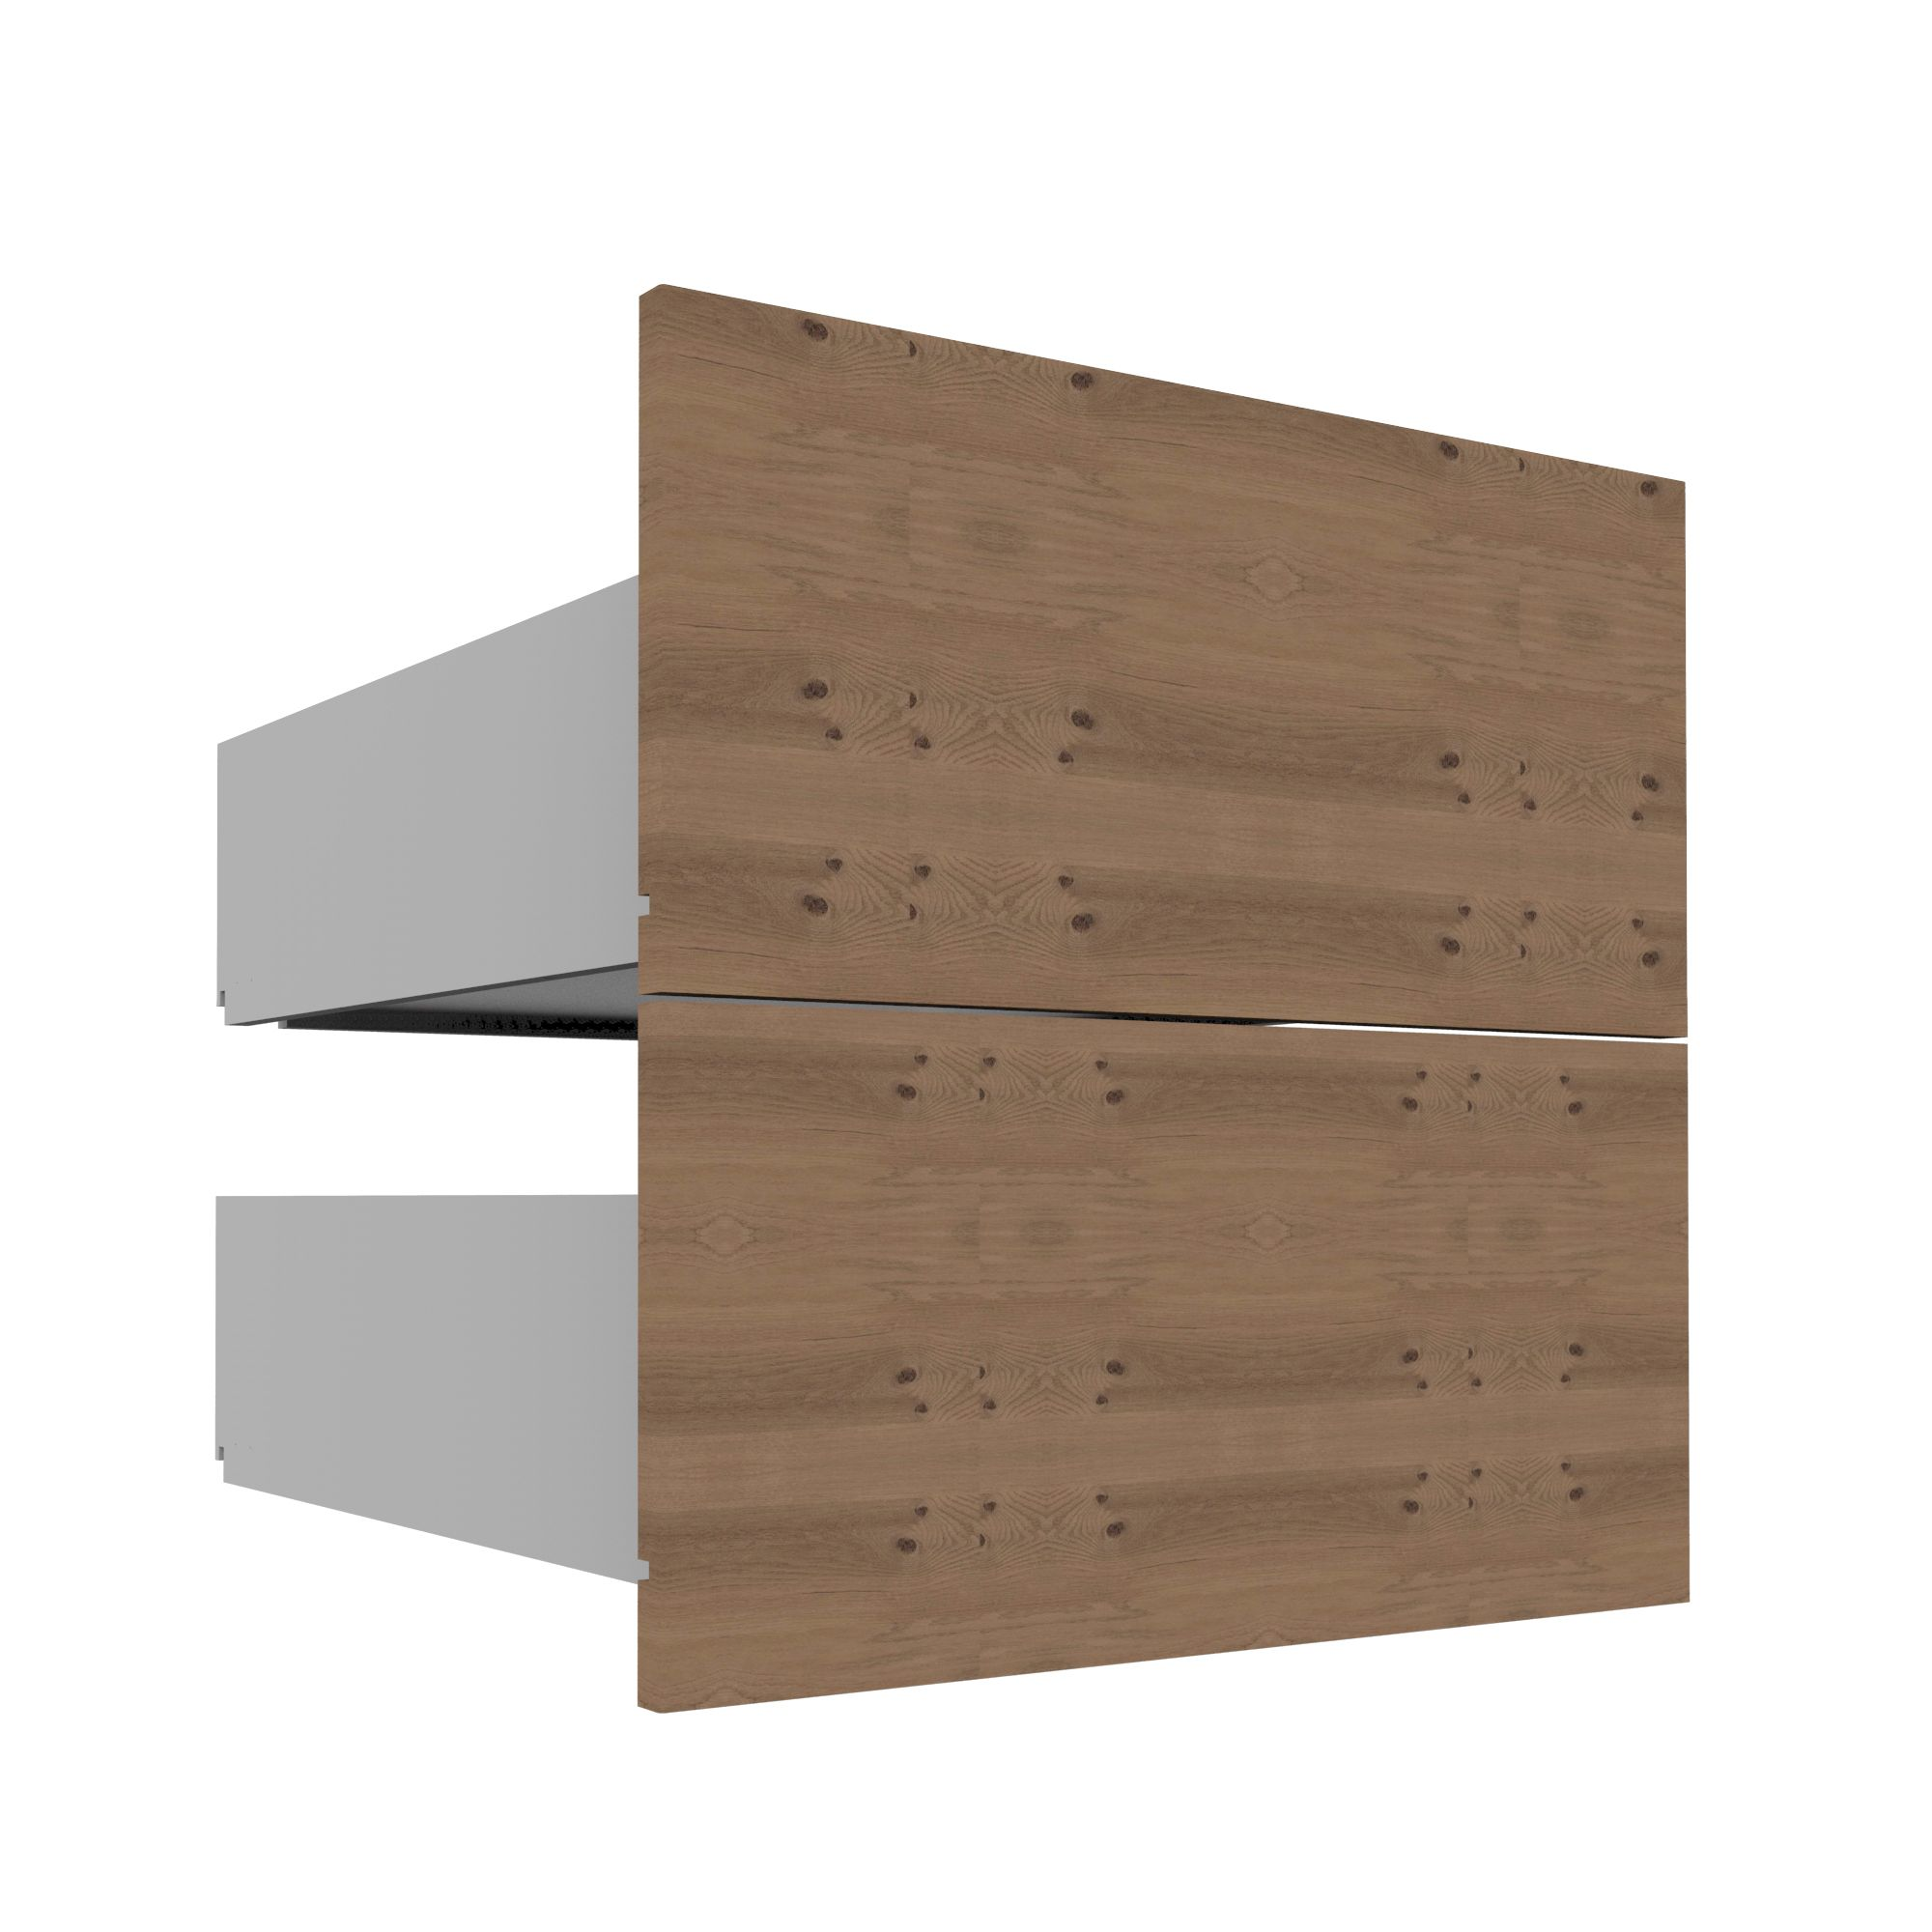 Darwin Modular Natural & Oak Effect External Drawers (h)237mm (w)500mm (d)566mm